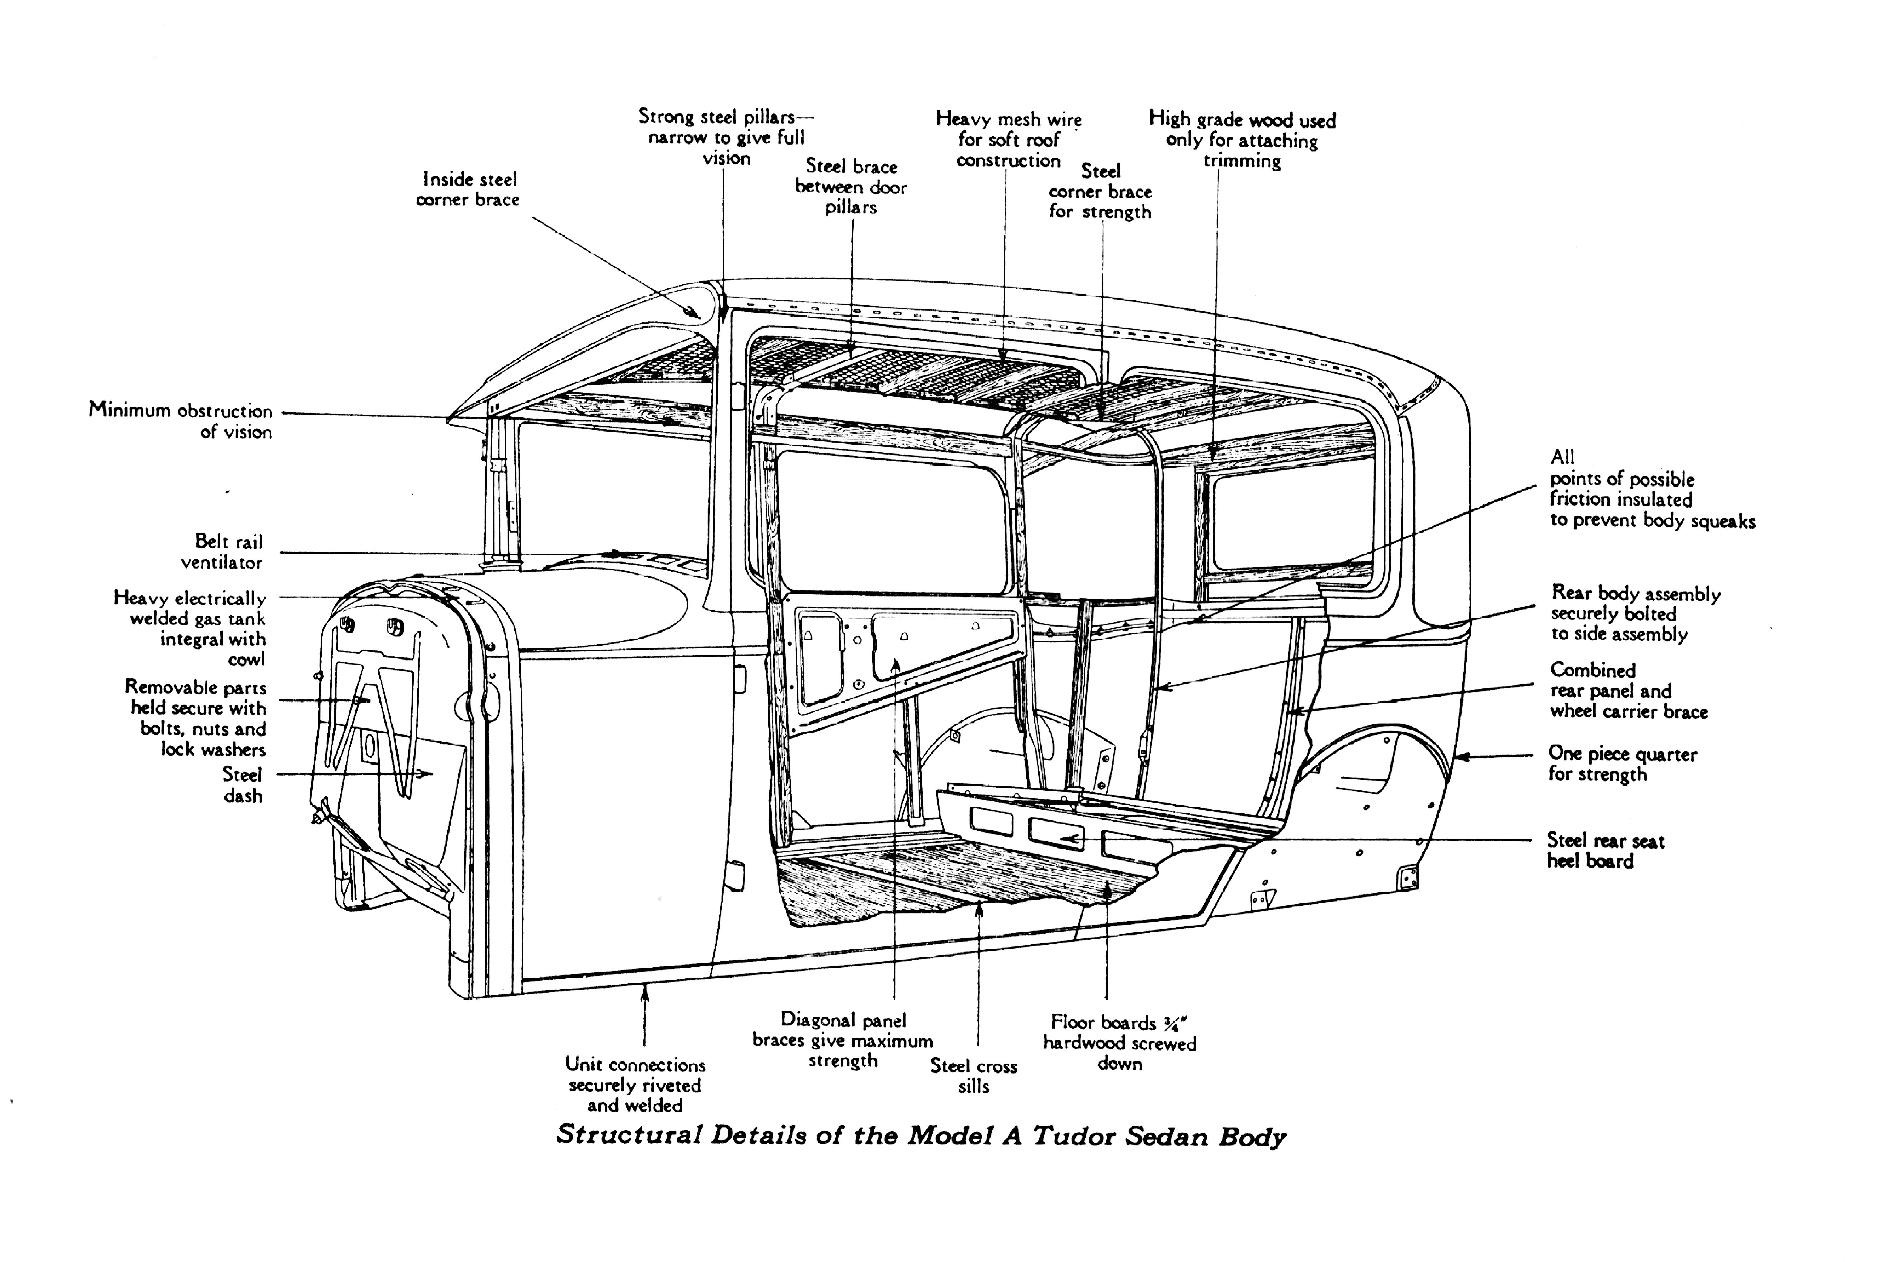 Ford Model A Body Dimensions Motor Mayhem Dji Phantom 2 Wiring Diagram Special Thanks To Deuceguy For Allowing Us Use His Images Please Check Site Updates And Larger Versions Of The